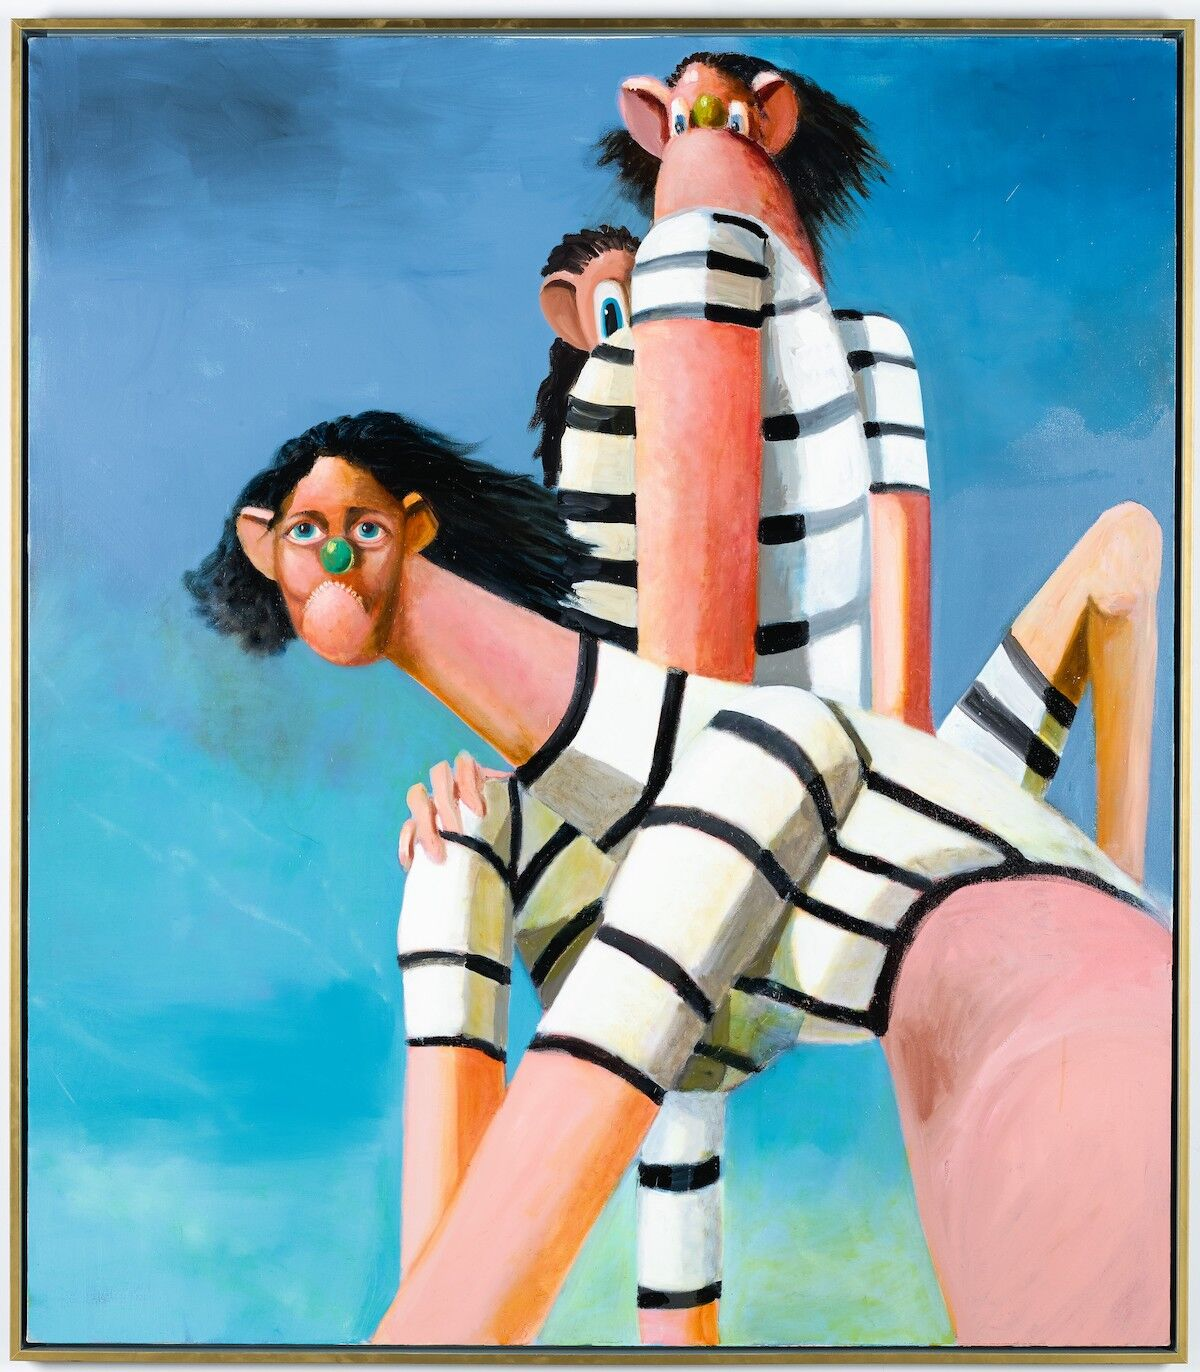 George Condo, Antipodal Reunion, 2005